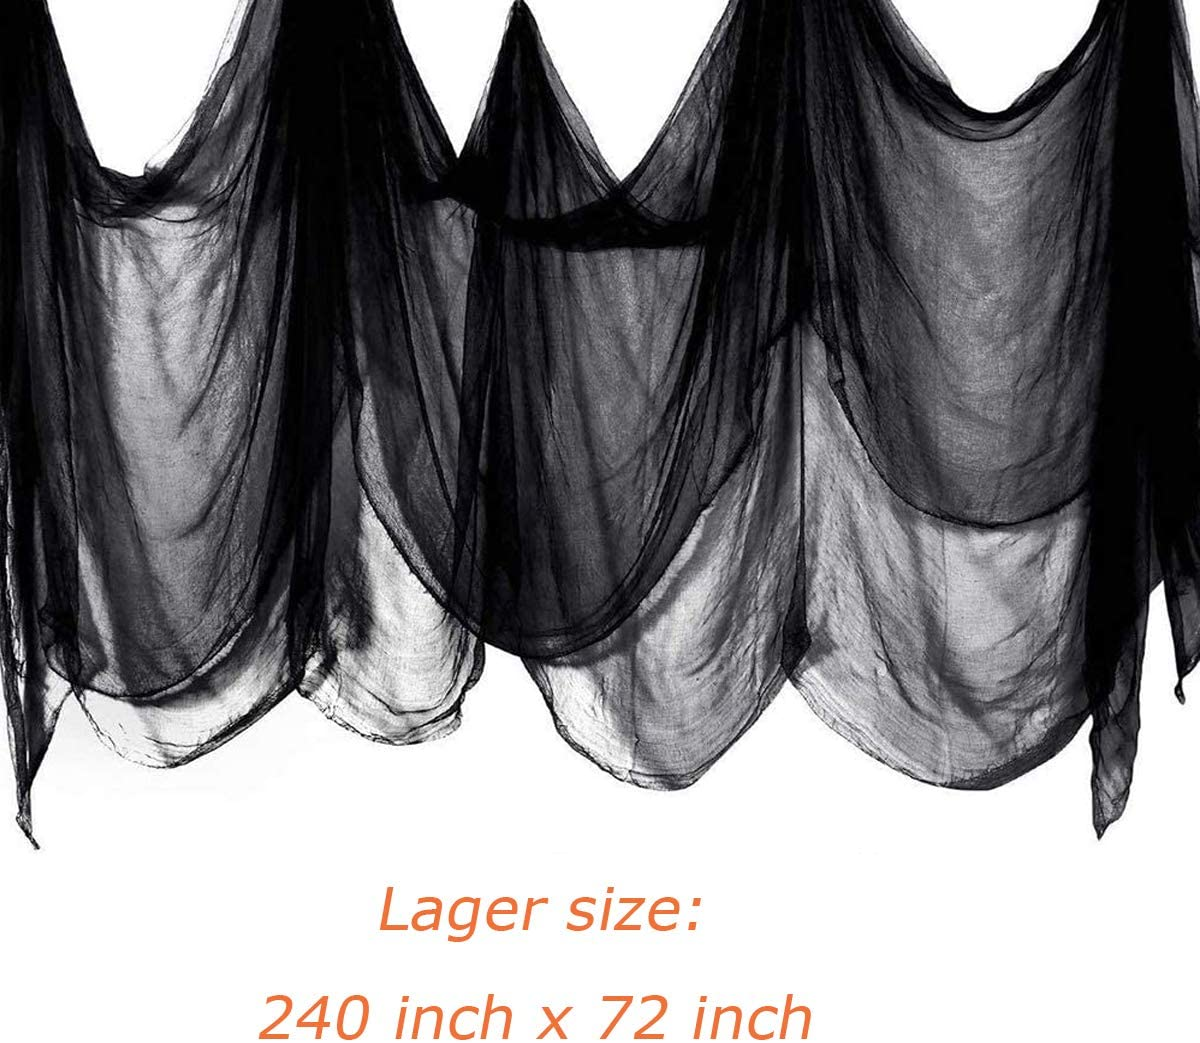 Halloween Black Creepy Cloth Spooky Halloween Decorations for Haunted House Doorways Windows Indoor